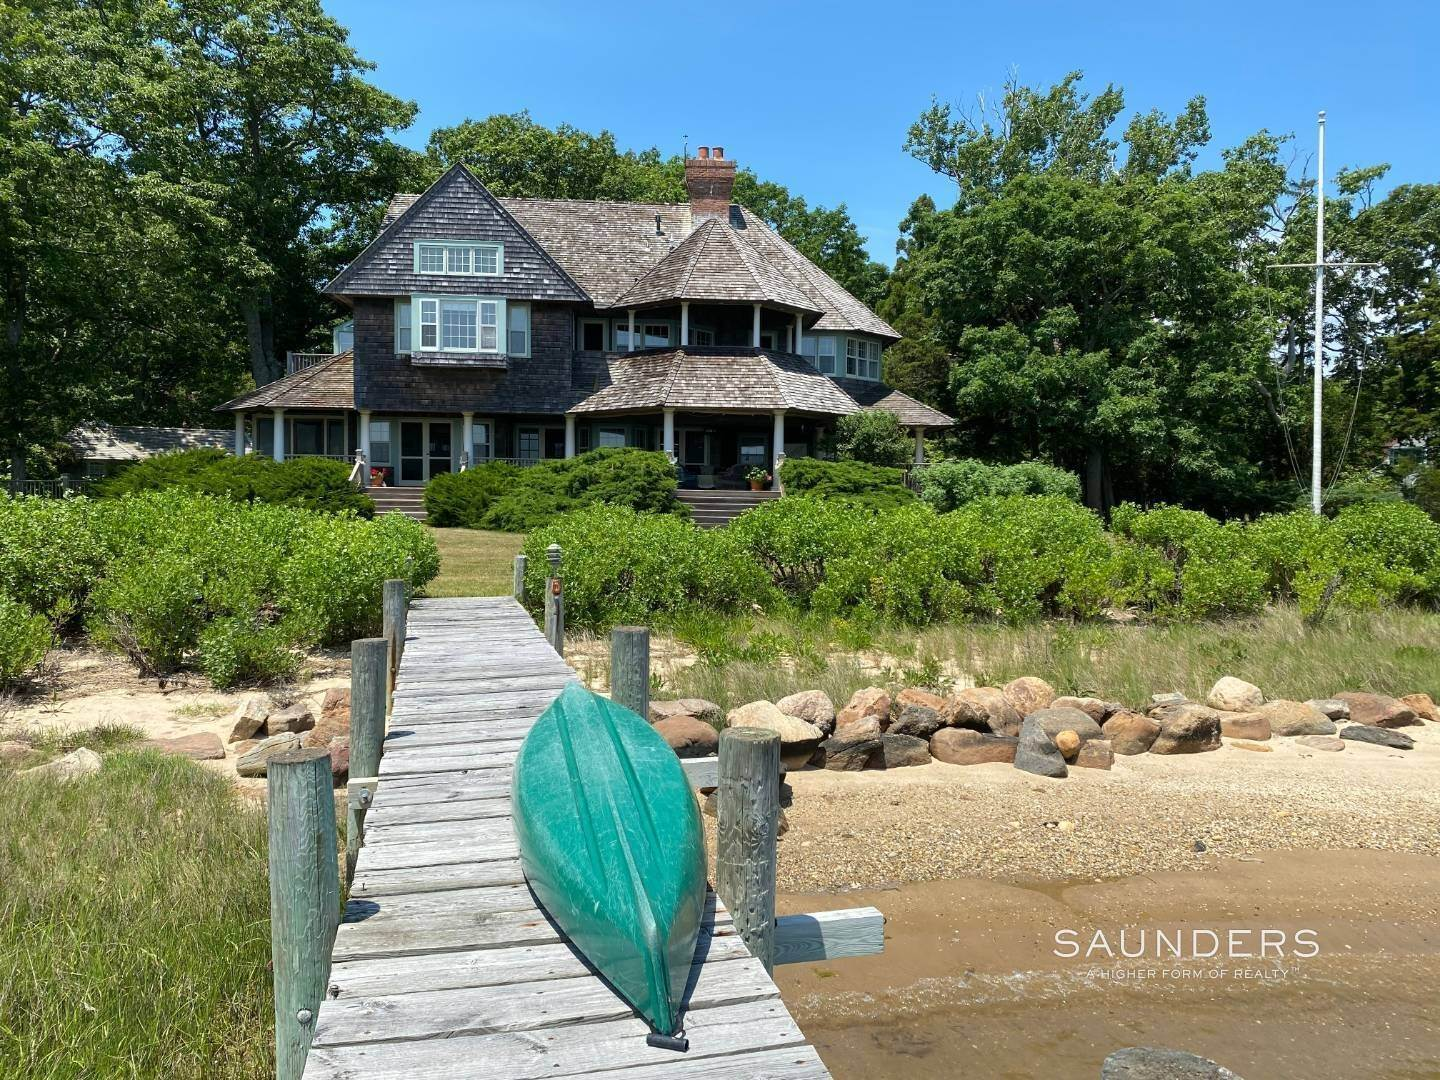 Single Family Homes for Sale at Classic Shelter Island Harborfront With Tennis And Pool 30 Little Ram Island Drive, Shelter Island Heights, Shelter Island, NY 11964